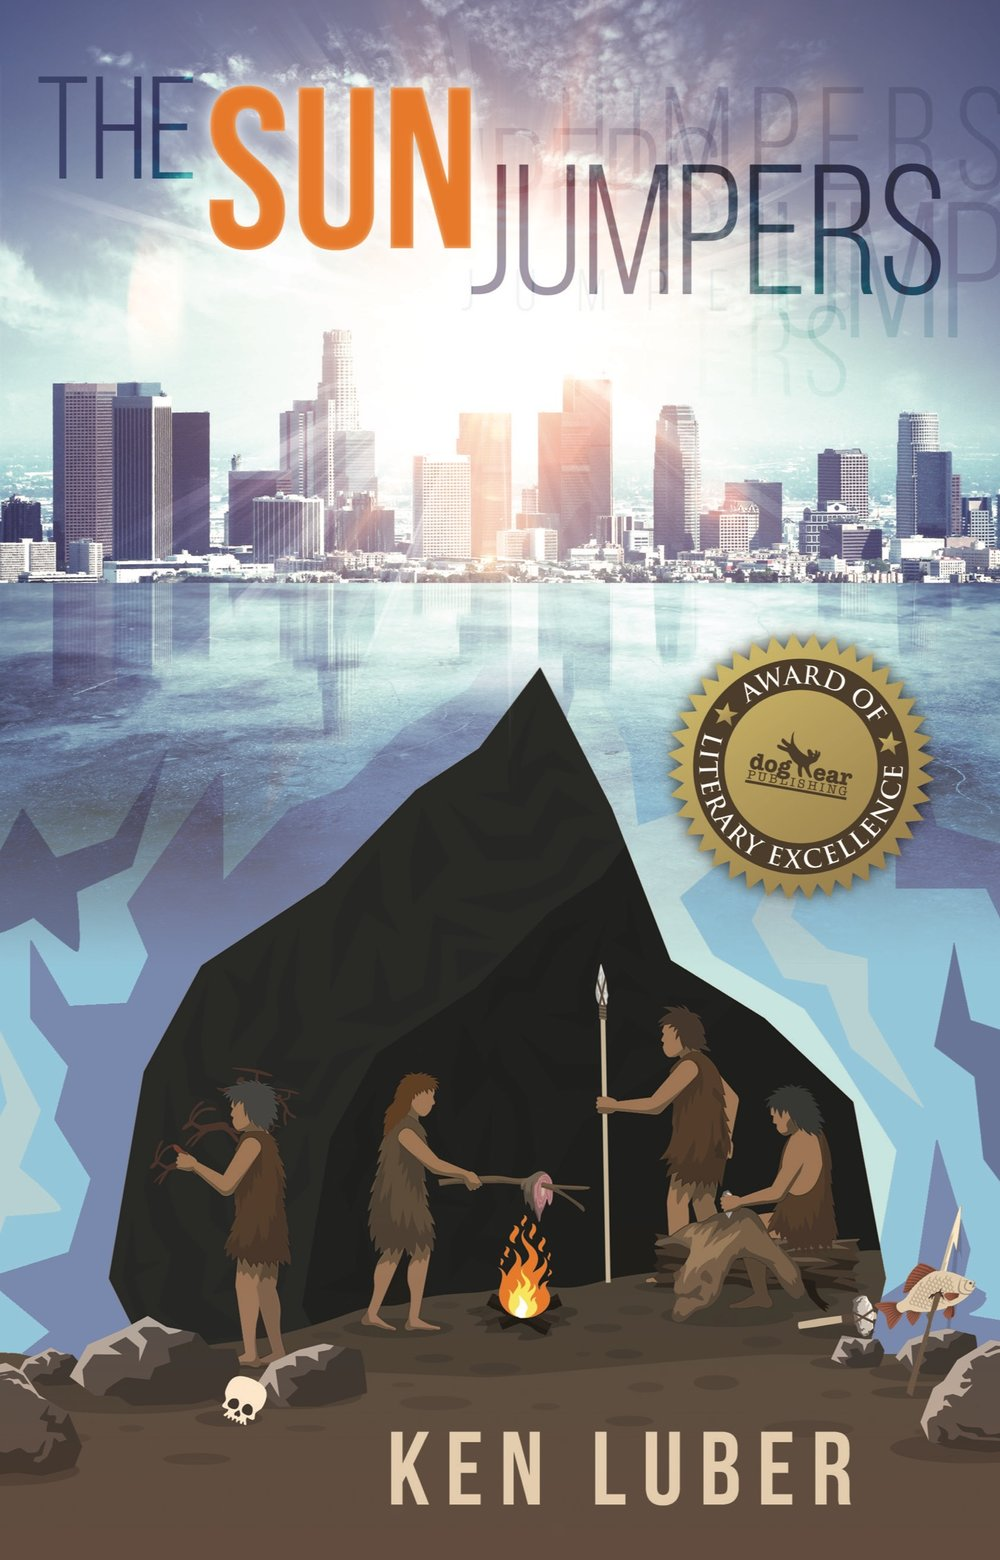 Find out more about Ken Luber's new award-winning novel...  The Sun Jumpers  - Click here to go to the